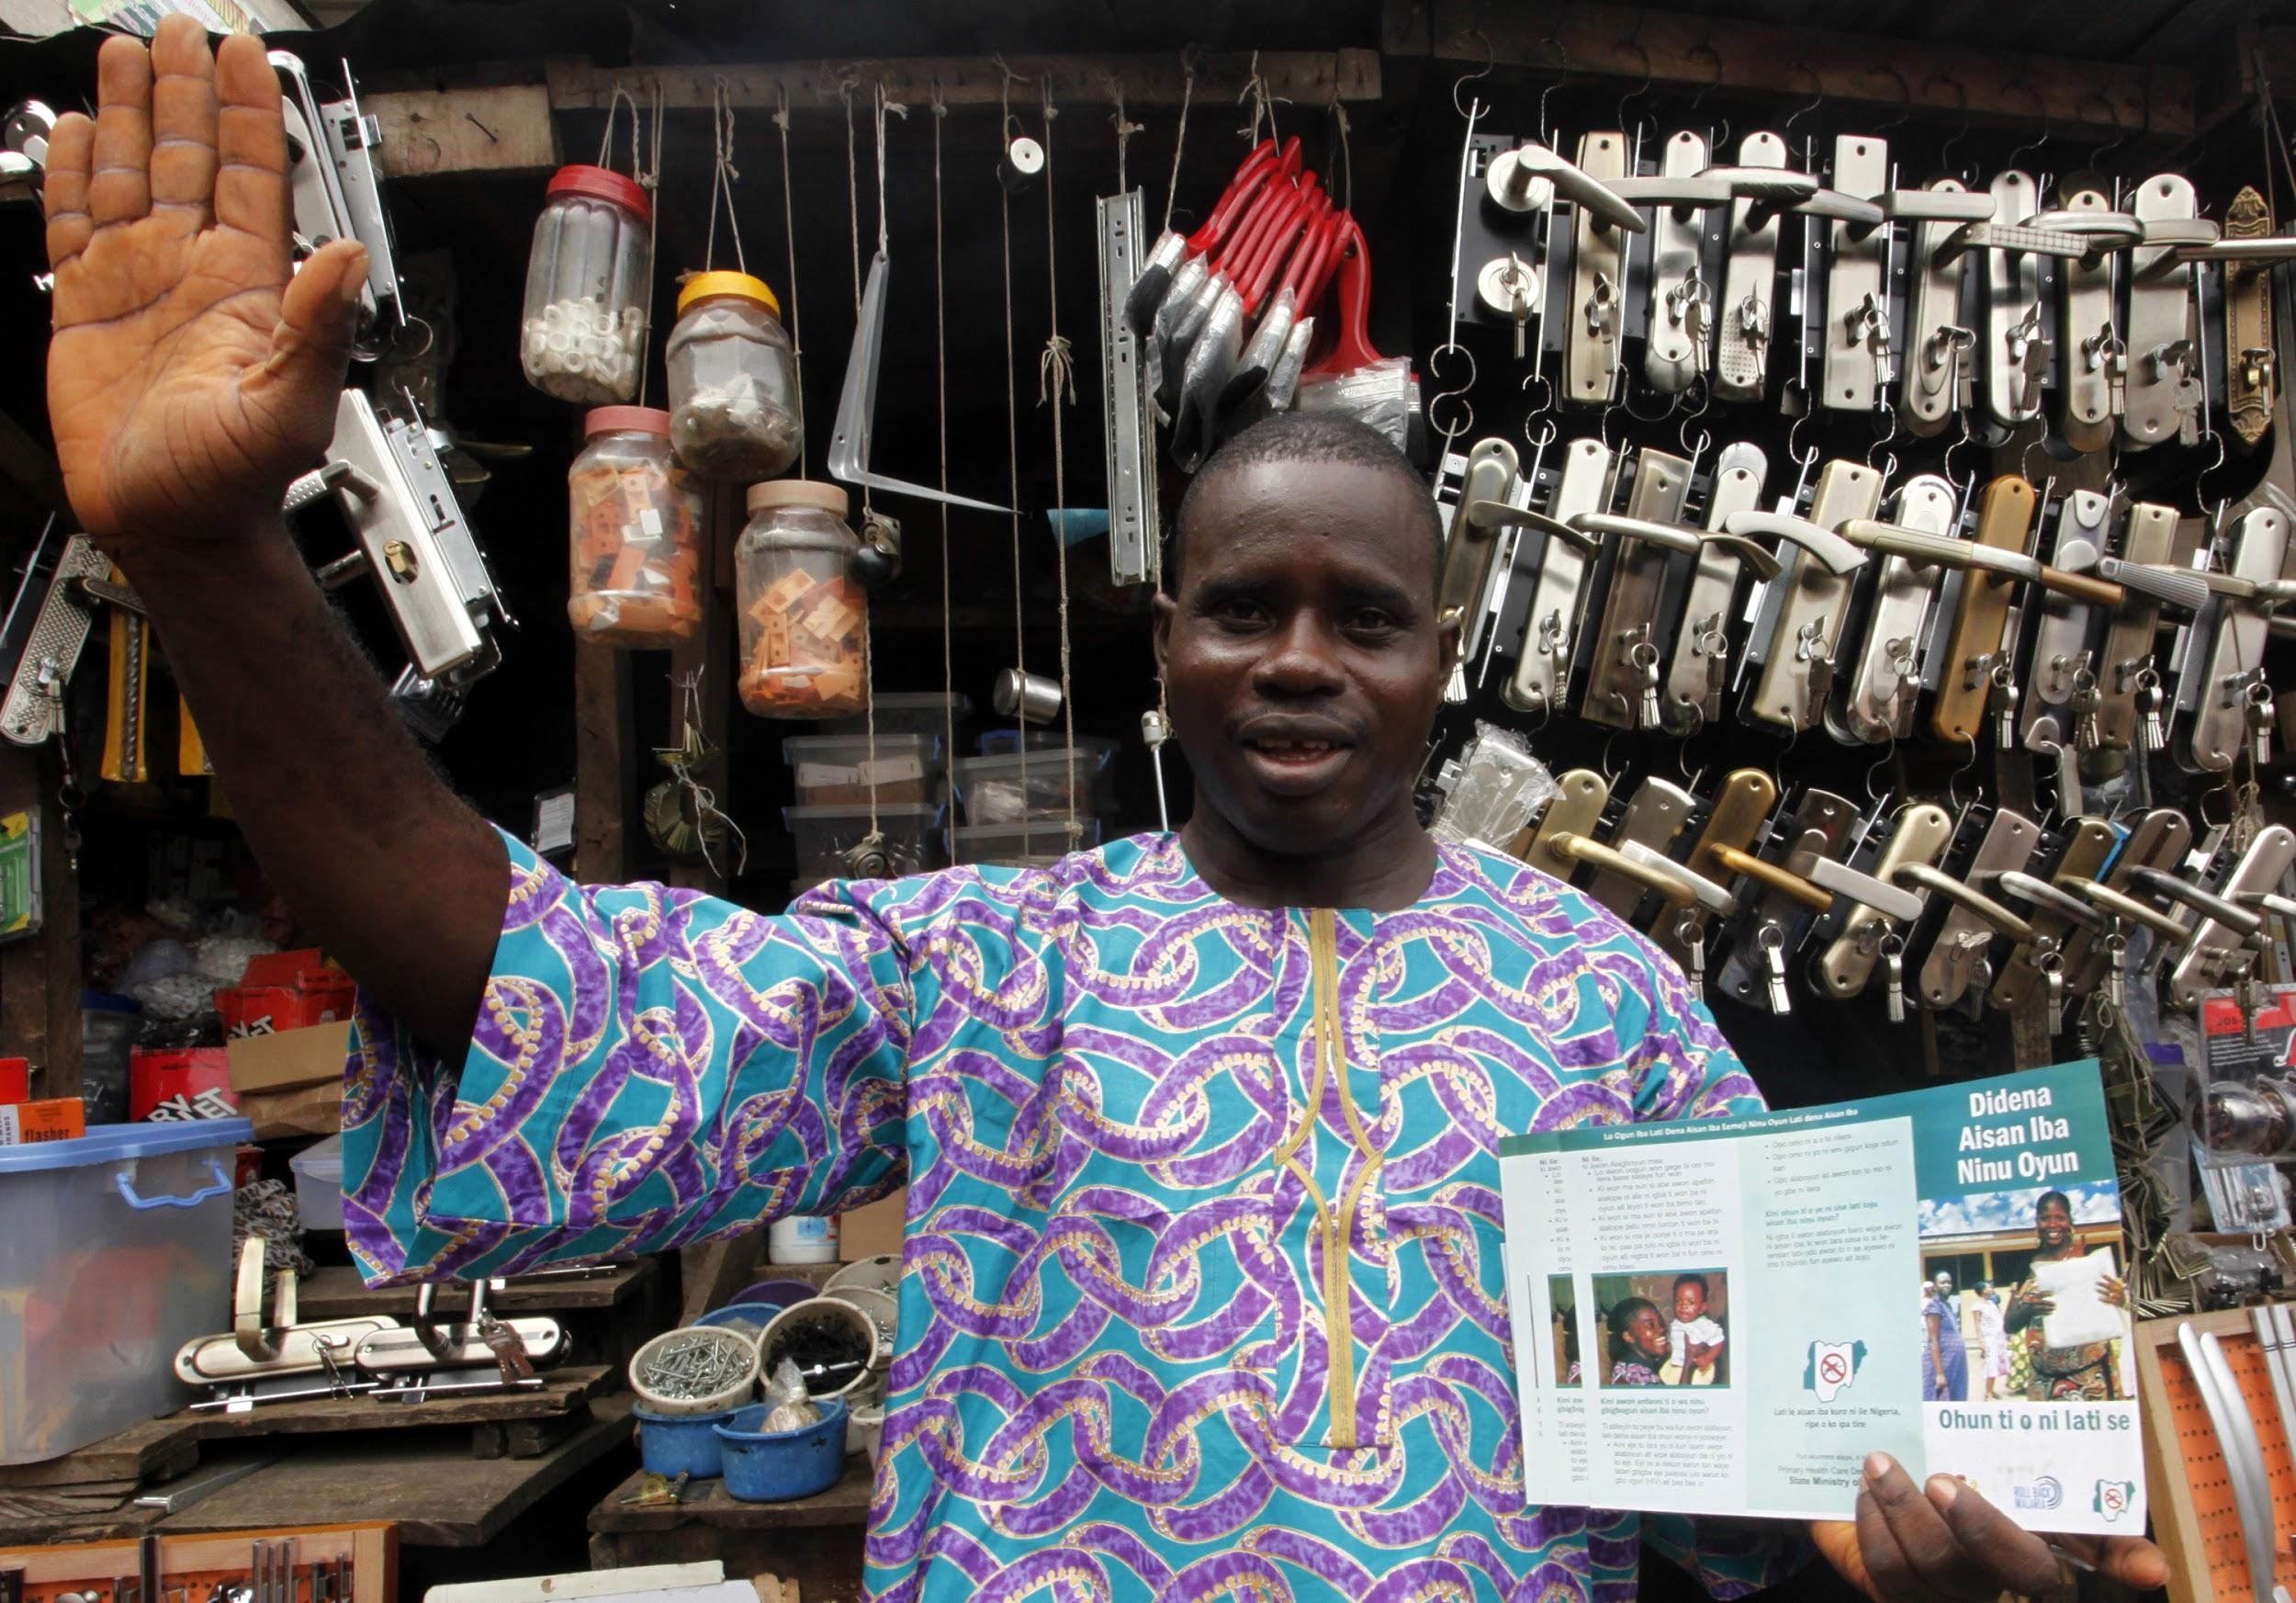 A store owner in Nigeria shows a malaria prevention flyer.